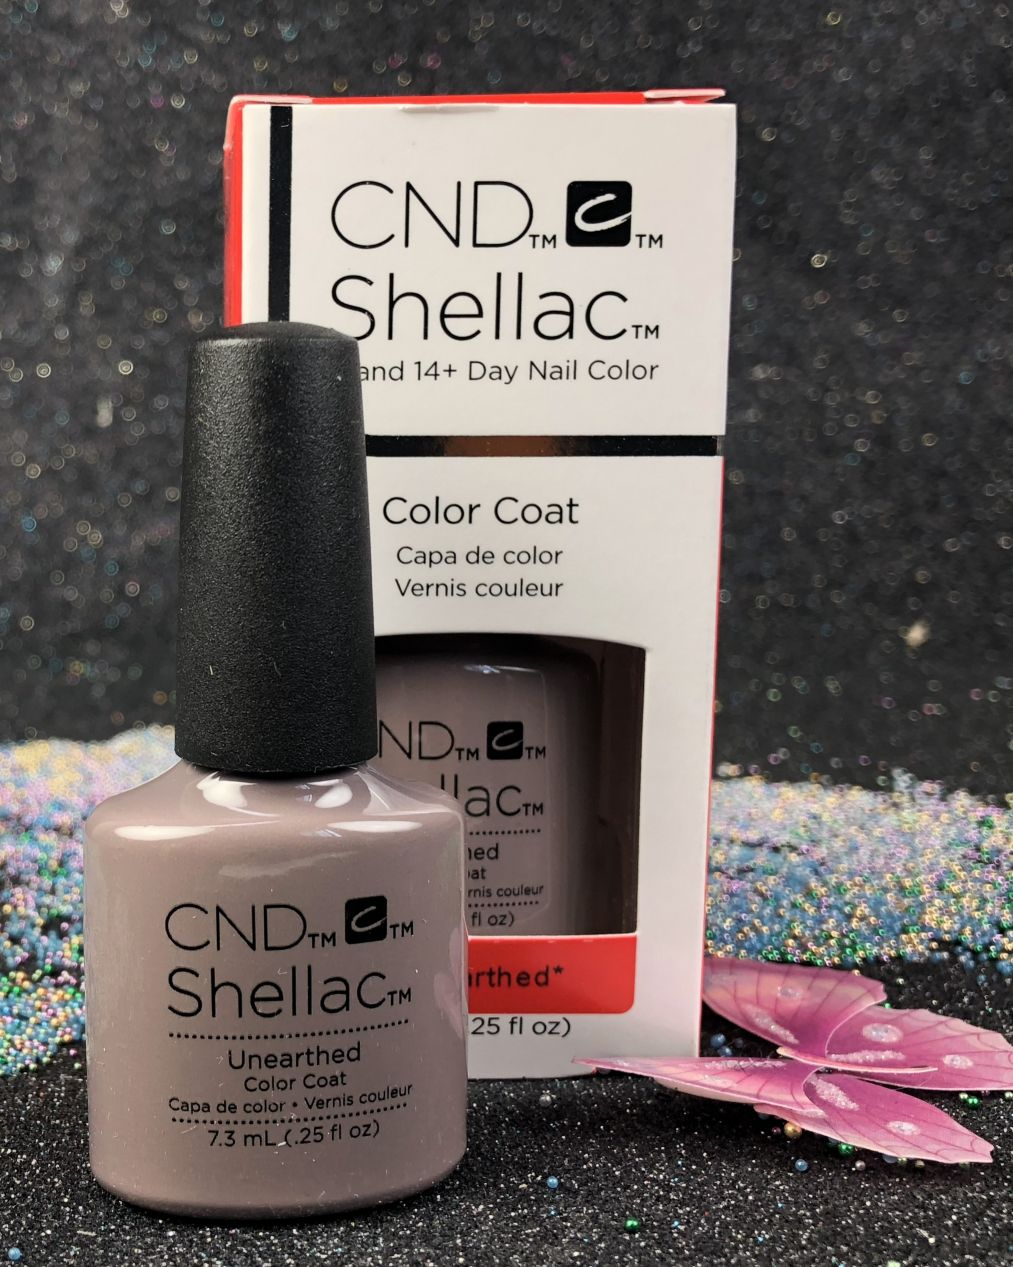 Cnd Shellac Unearthed 151 Color Coat Gel Nail Polish Nude 2018 Collection 7 3 Ml 0 25 Fl Oz